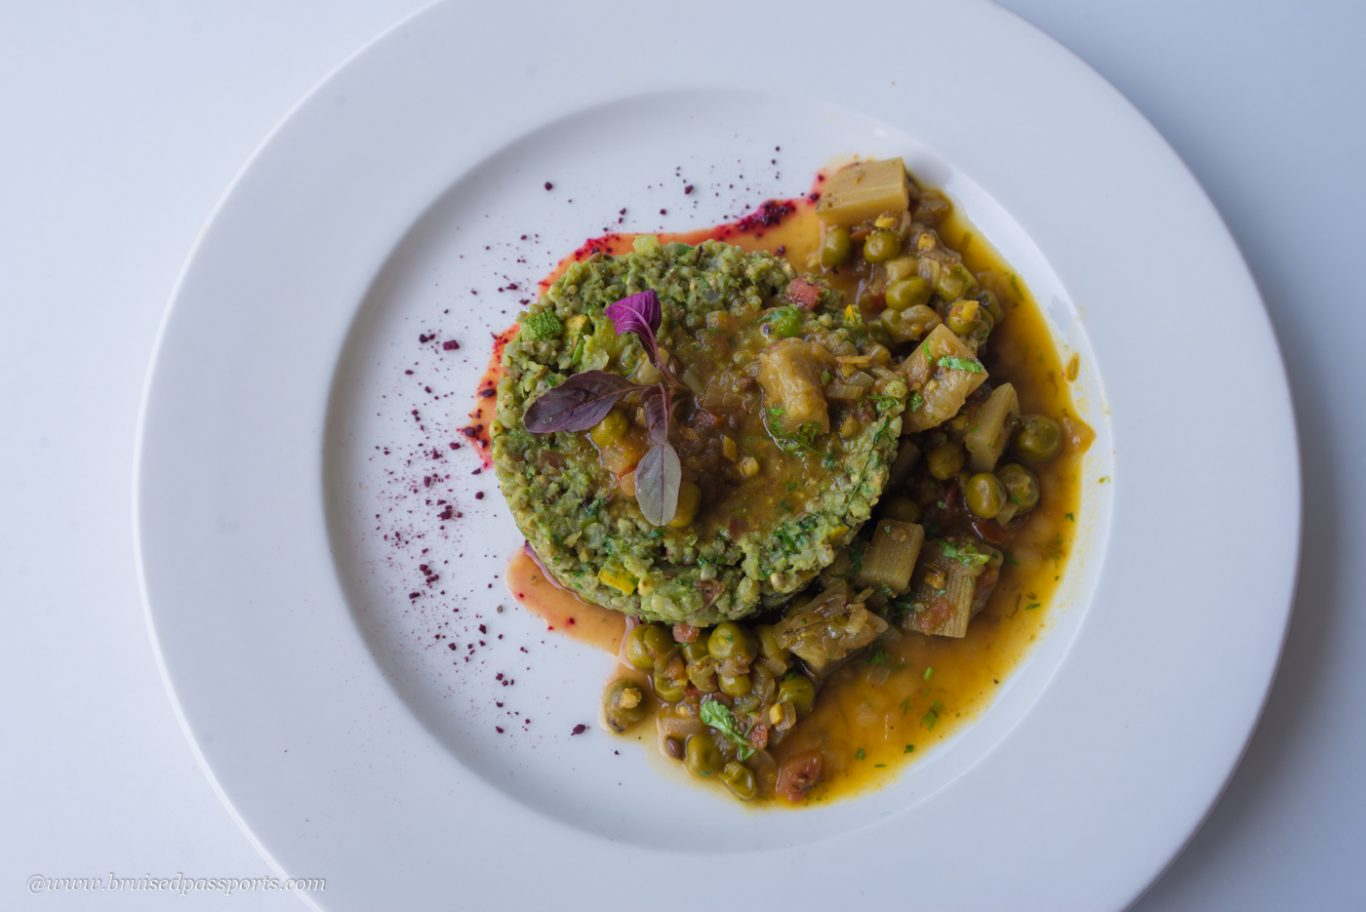 healthy meals with quinoa and bitter gourd at Hilton Shillim